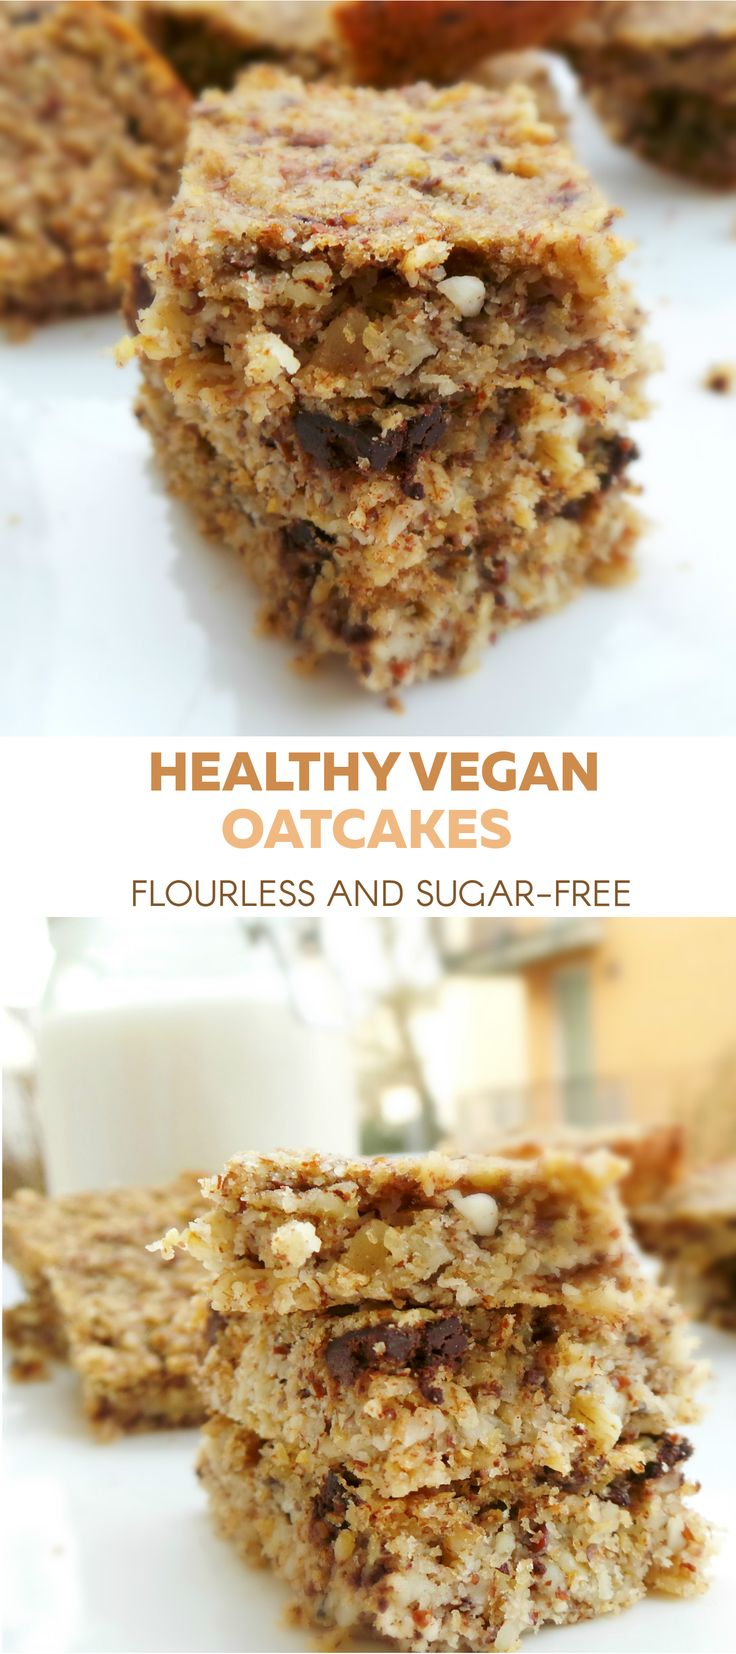 Healthy vegan sugar-free and flourless oatcakes. Delicious healthy breakfast, that's also good for your skin. Use gluten-free oats to make it also gluten-free.